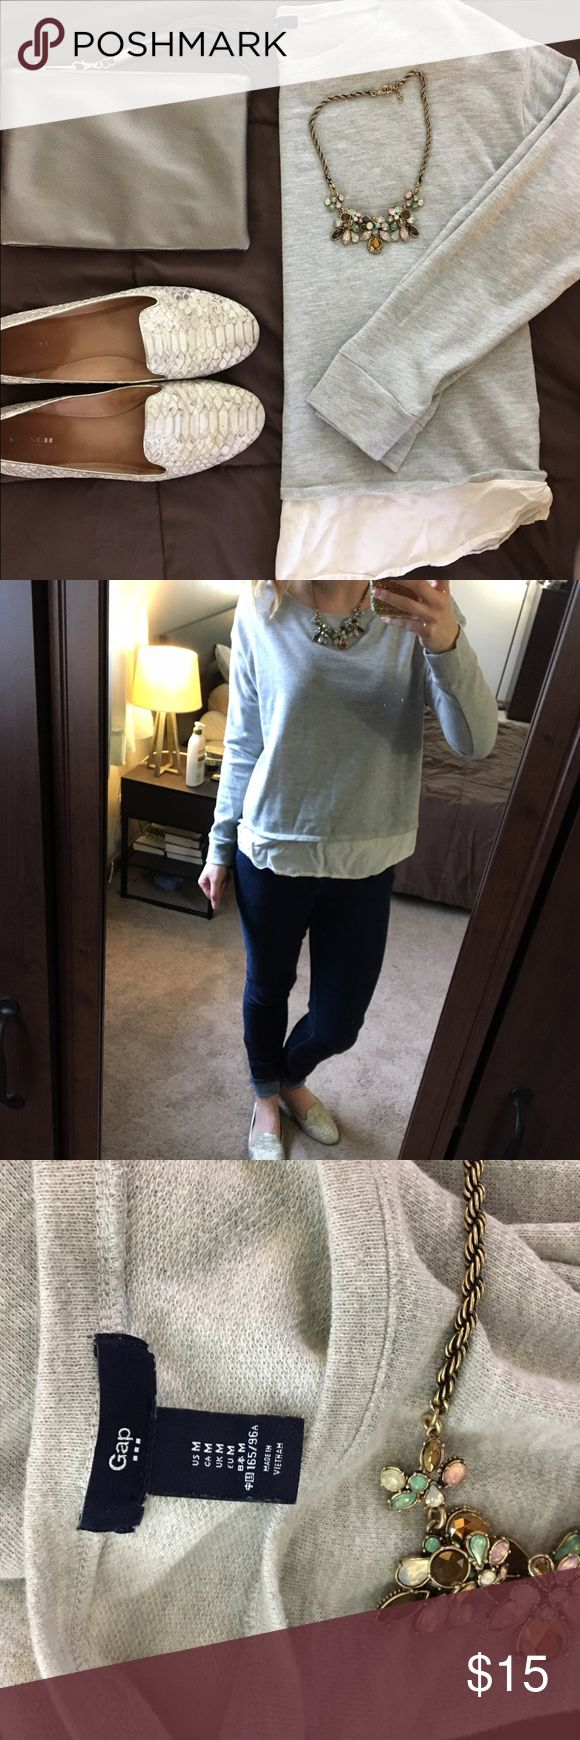 ADORABLE GREY SWEATER Soft, light grey sweater with attached details at bottom to look like it has an undershirt. Perfect for a spring day date or a day in the office. Pair with a blazer to dress up or destroyed denim and heeled sandals for a dress down. GAP Tops Tees - Long Sleeve